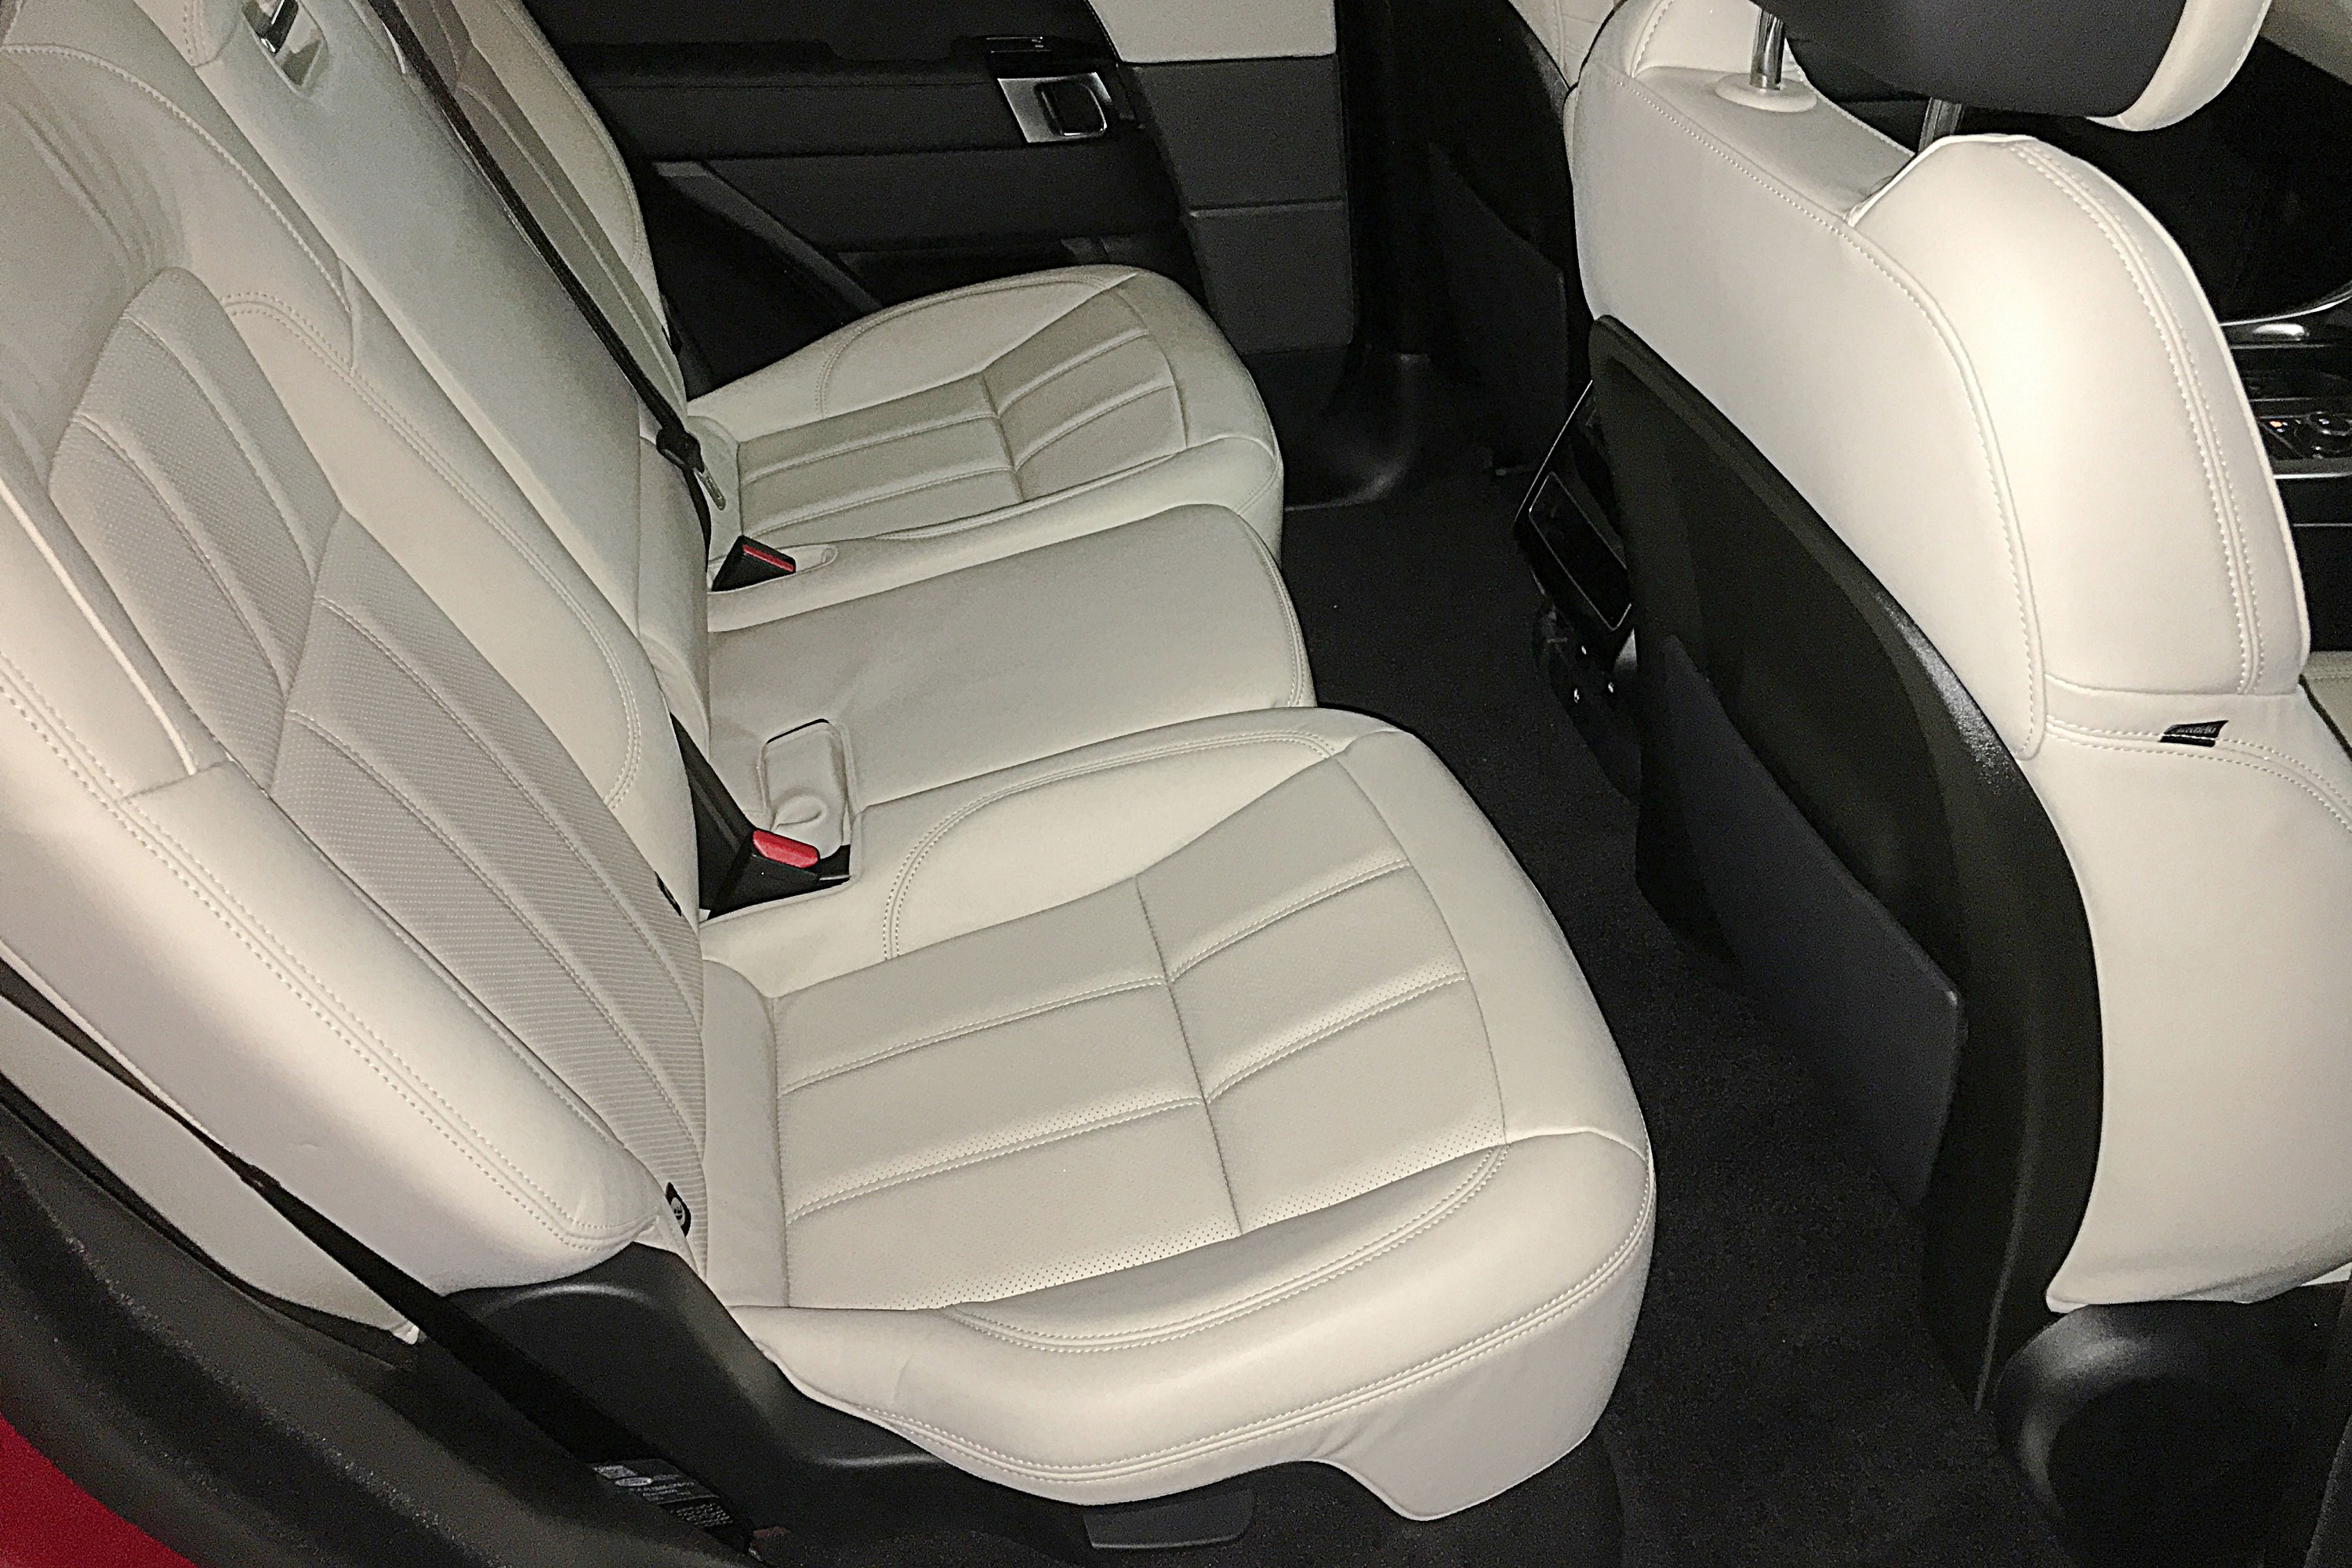 2019 Range Rover PHEV 11 rear seats